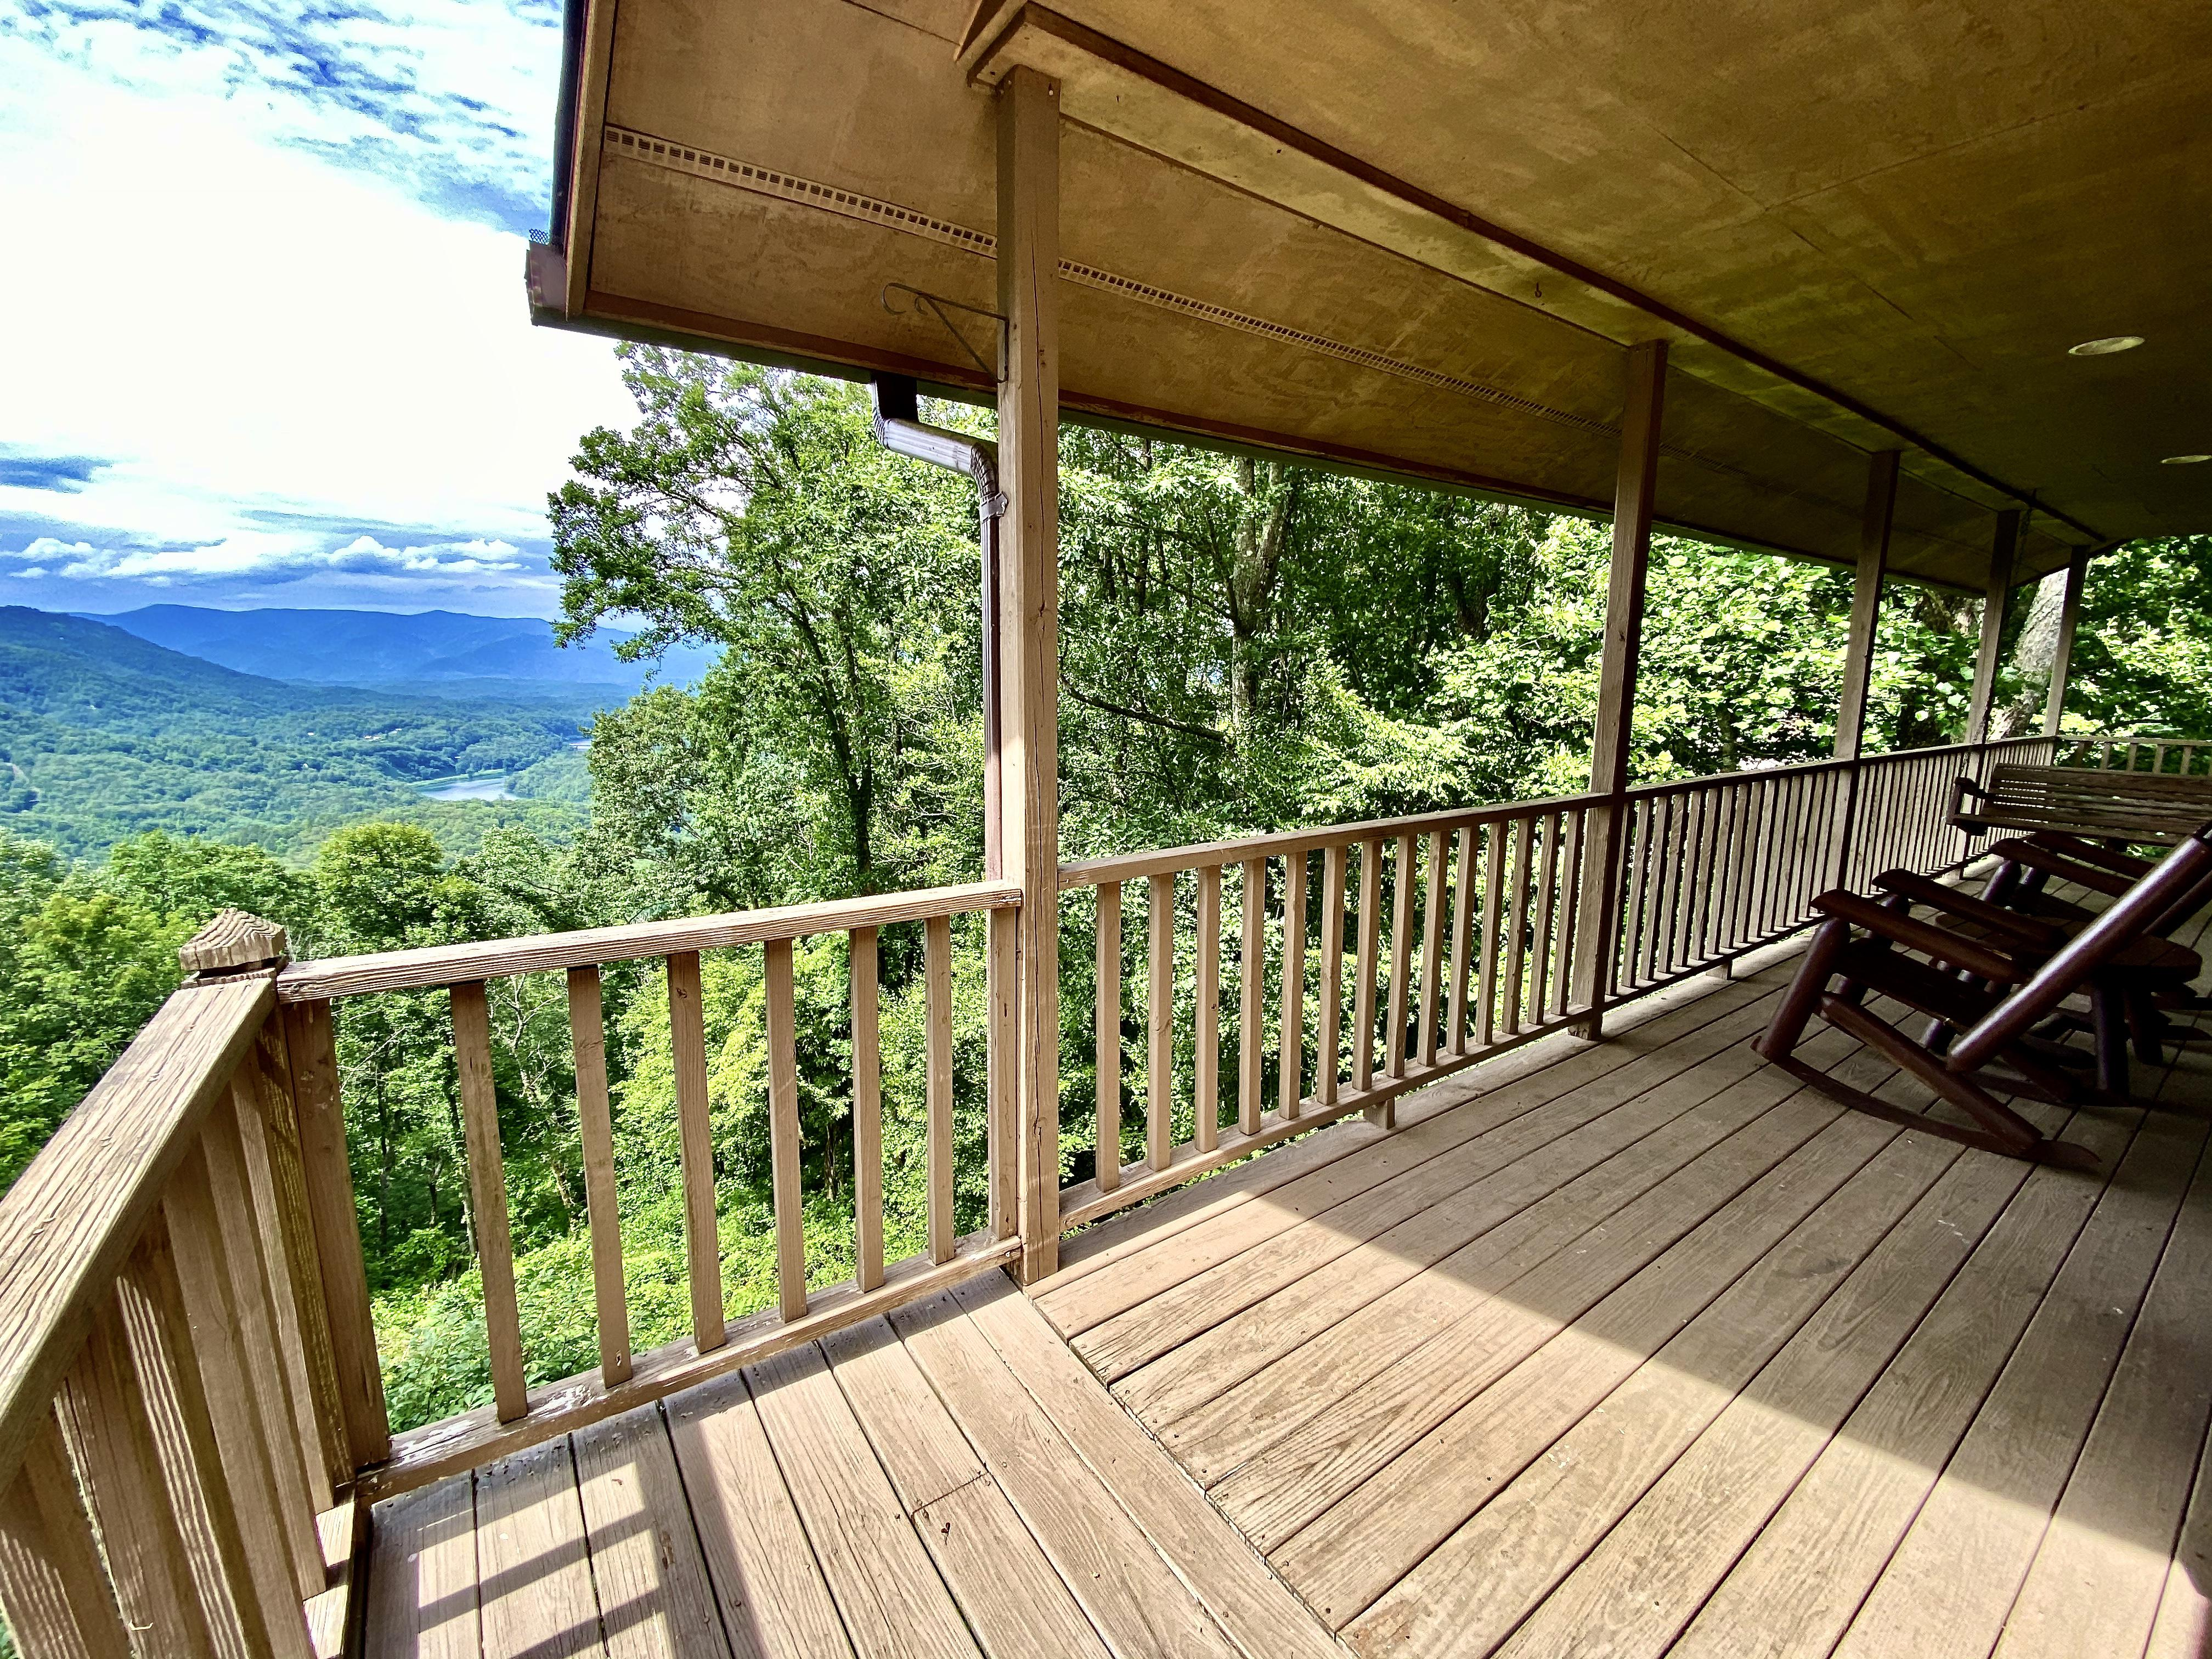 Spacious Covered Deck is the ideal place to relax and enjoy the View...